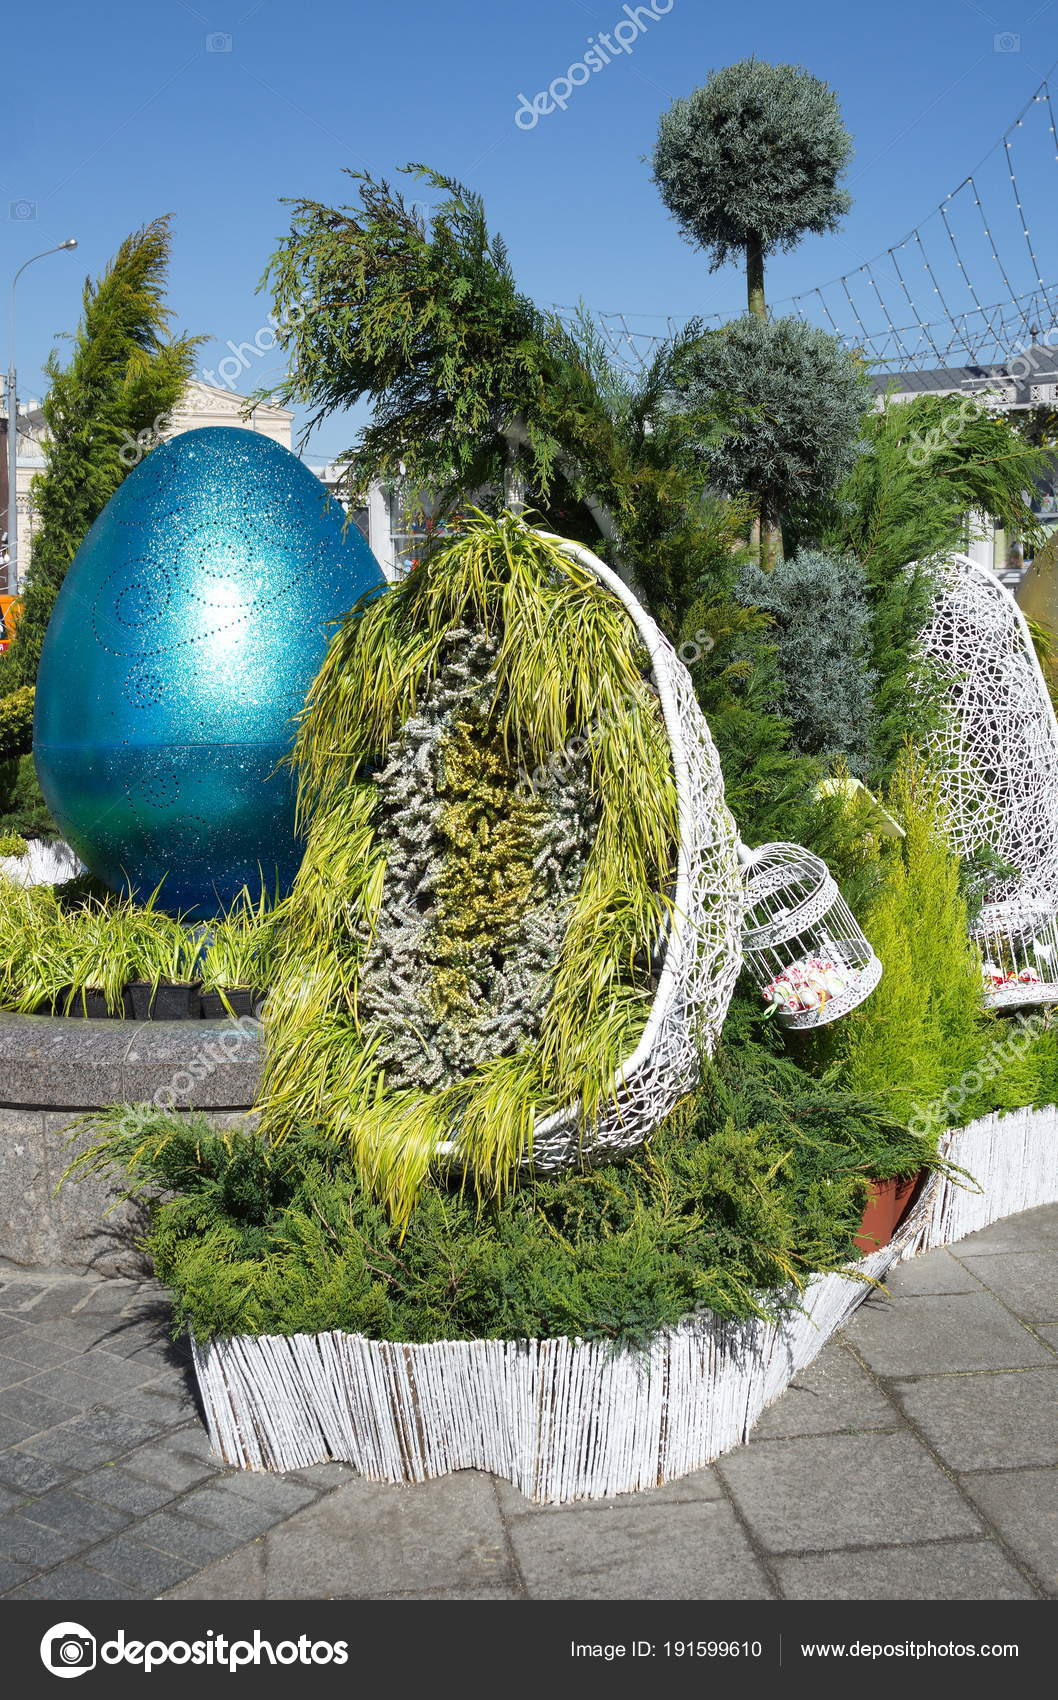 Charity festival easter gift moscow holiday decorations revolution charity festival easter gift in moscow holiday decorations at the revolution square russia photo by koromelenayandex negle Images